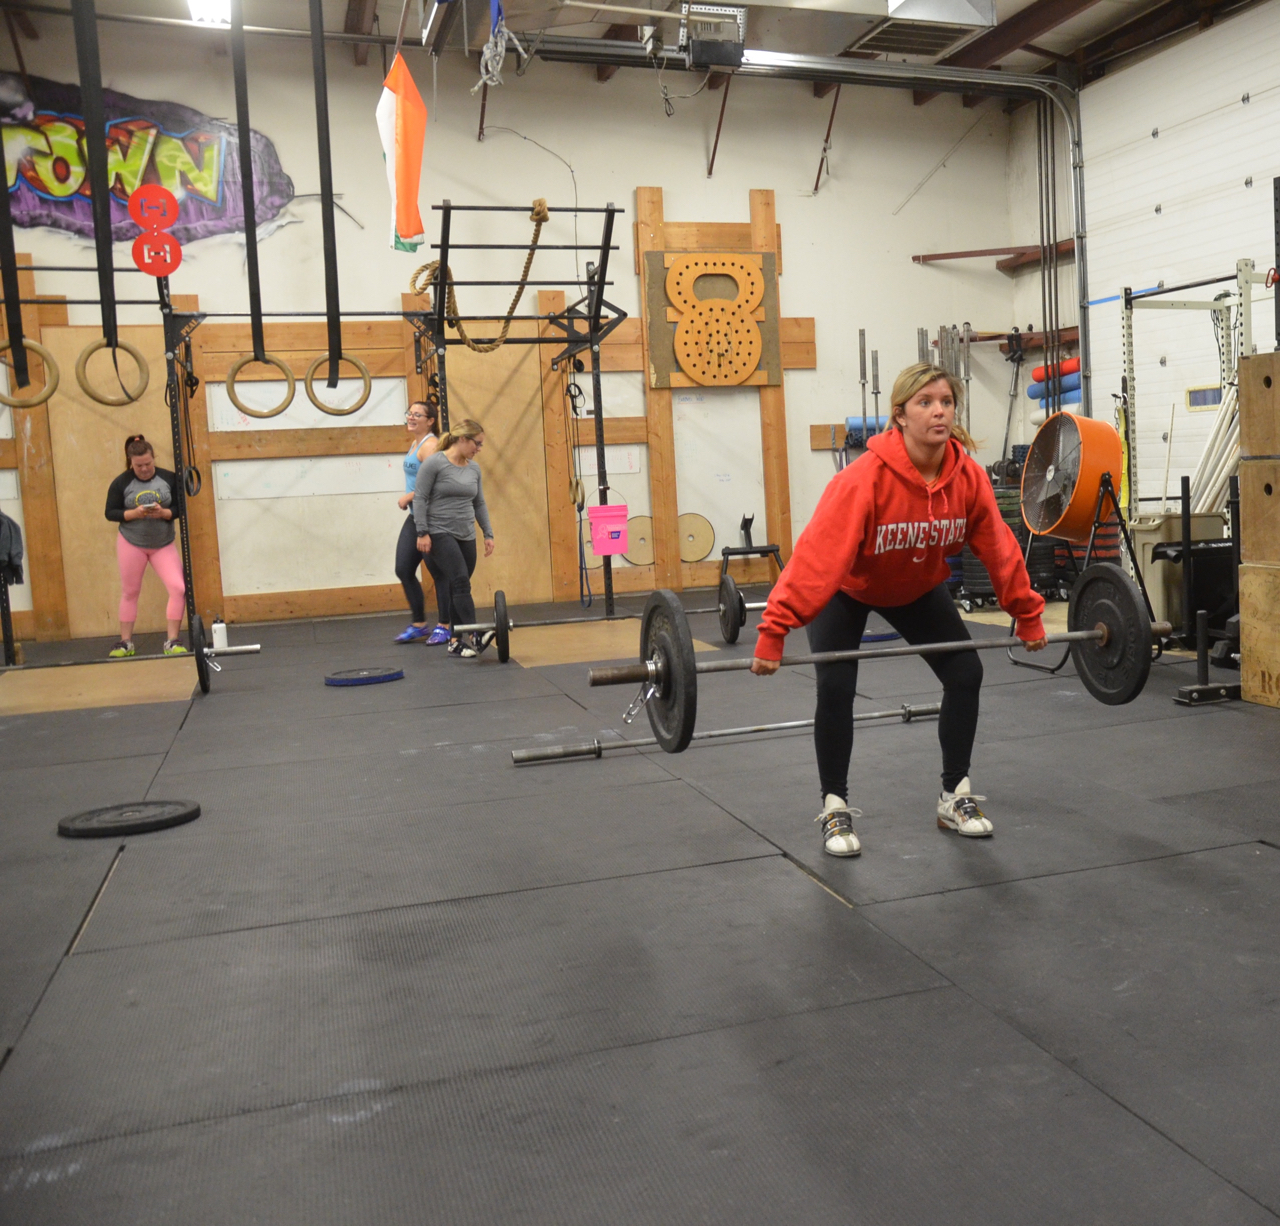 Welcome back Sarah & Tots to the real world (in a gym).